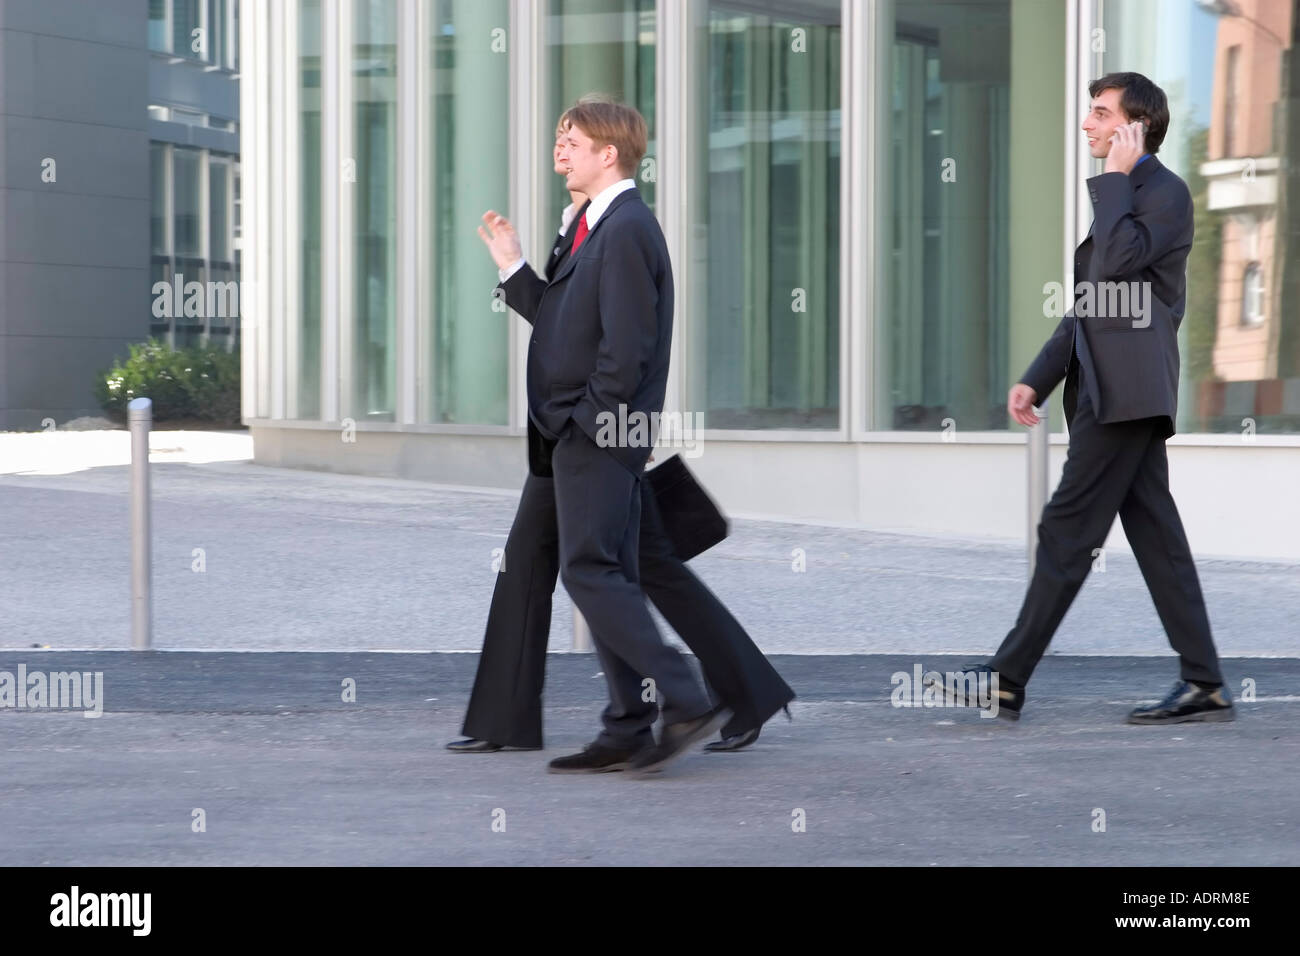 3af3f62ea1ca Man and woman in business clothing converse. ADRM99 (RF). 3 three  businessmen strolling while lunch break in front of business building -  Stock Image